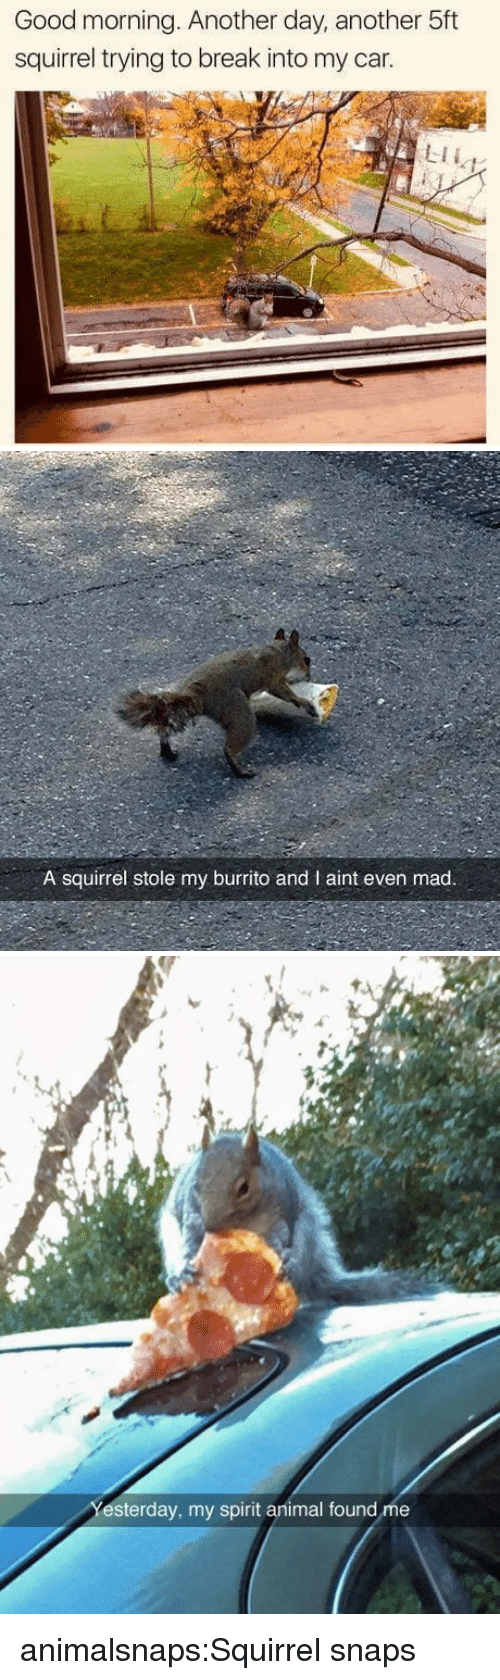 Target, Tumblr, and Good Morning: Good morning. Another day, another 5ft  squirrel trying to break into my car.  LII   A squirrel stole my burrito and I aint even mad.   et  esterday, my spirit animal found me animalsnaps:Squirrel snaps